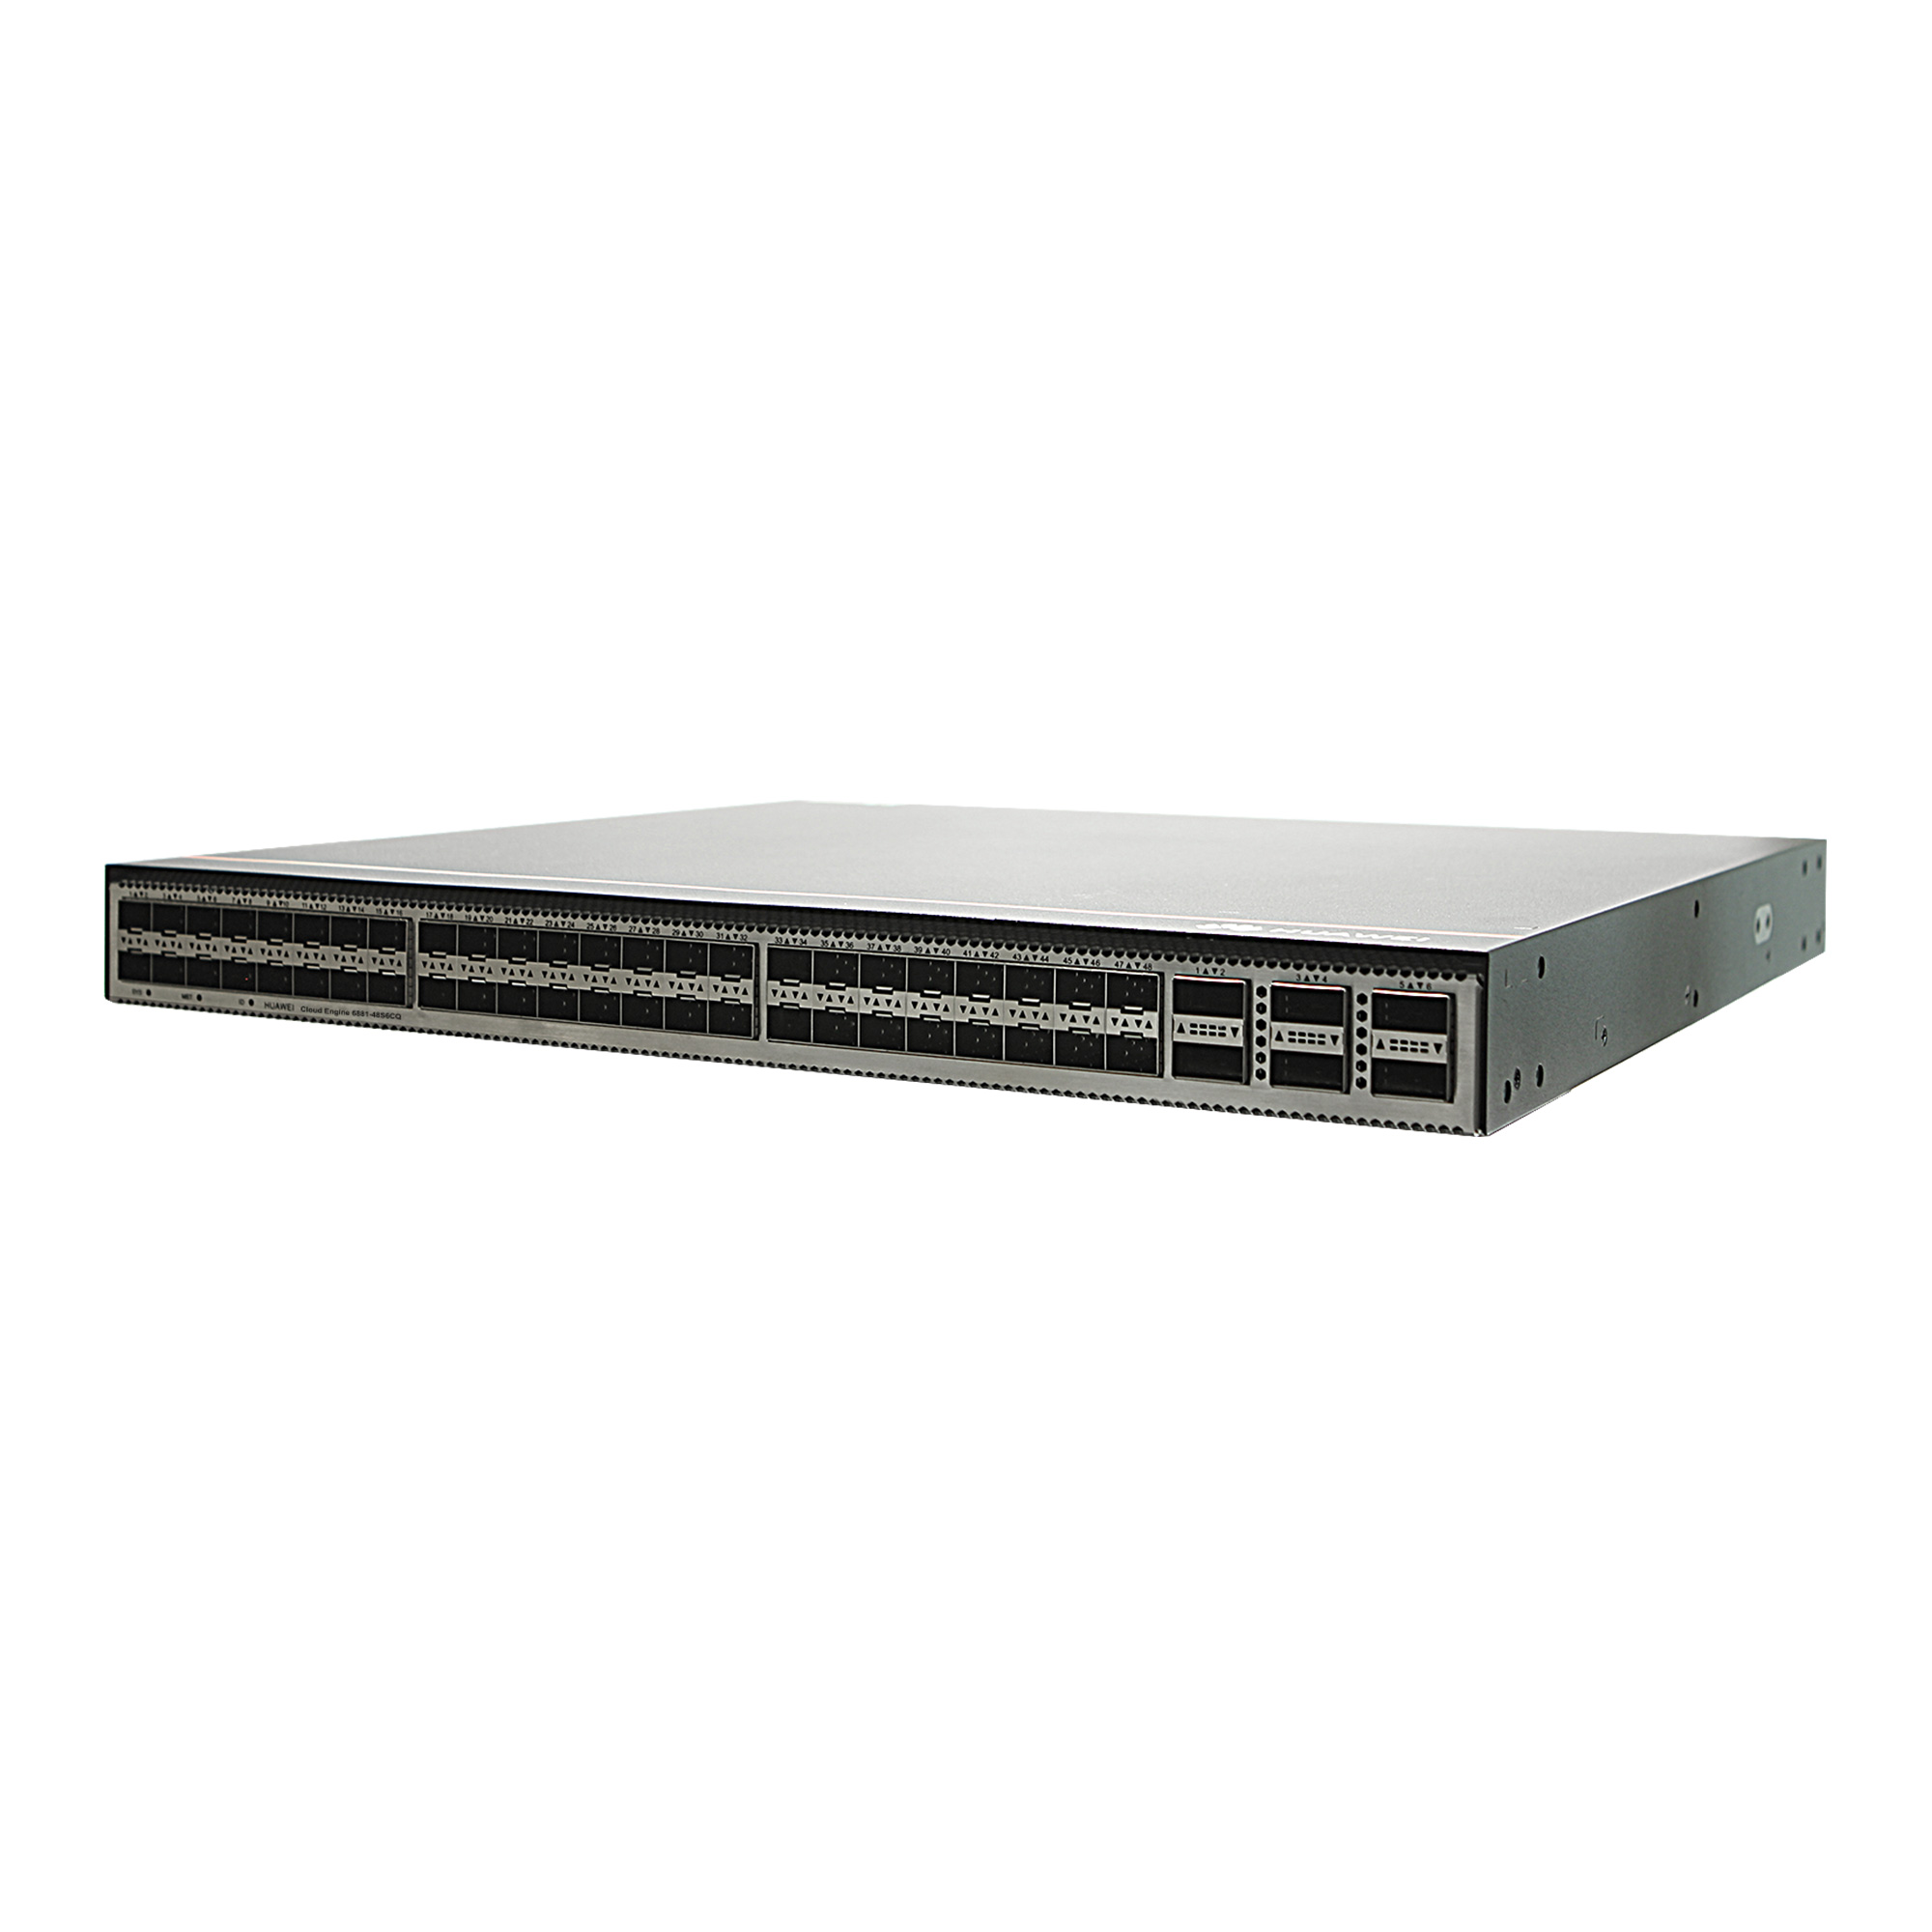 CE6881-48S6CQ Switches Networking4810GE SFP+, 6100G QSFP28, Without Power Fan